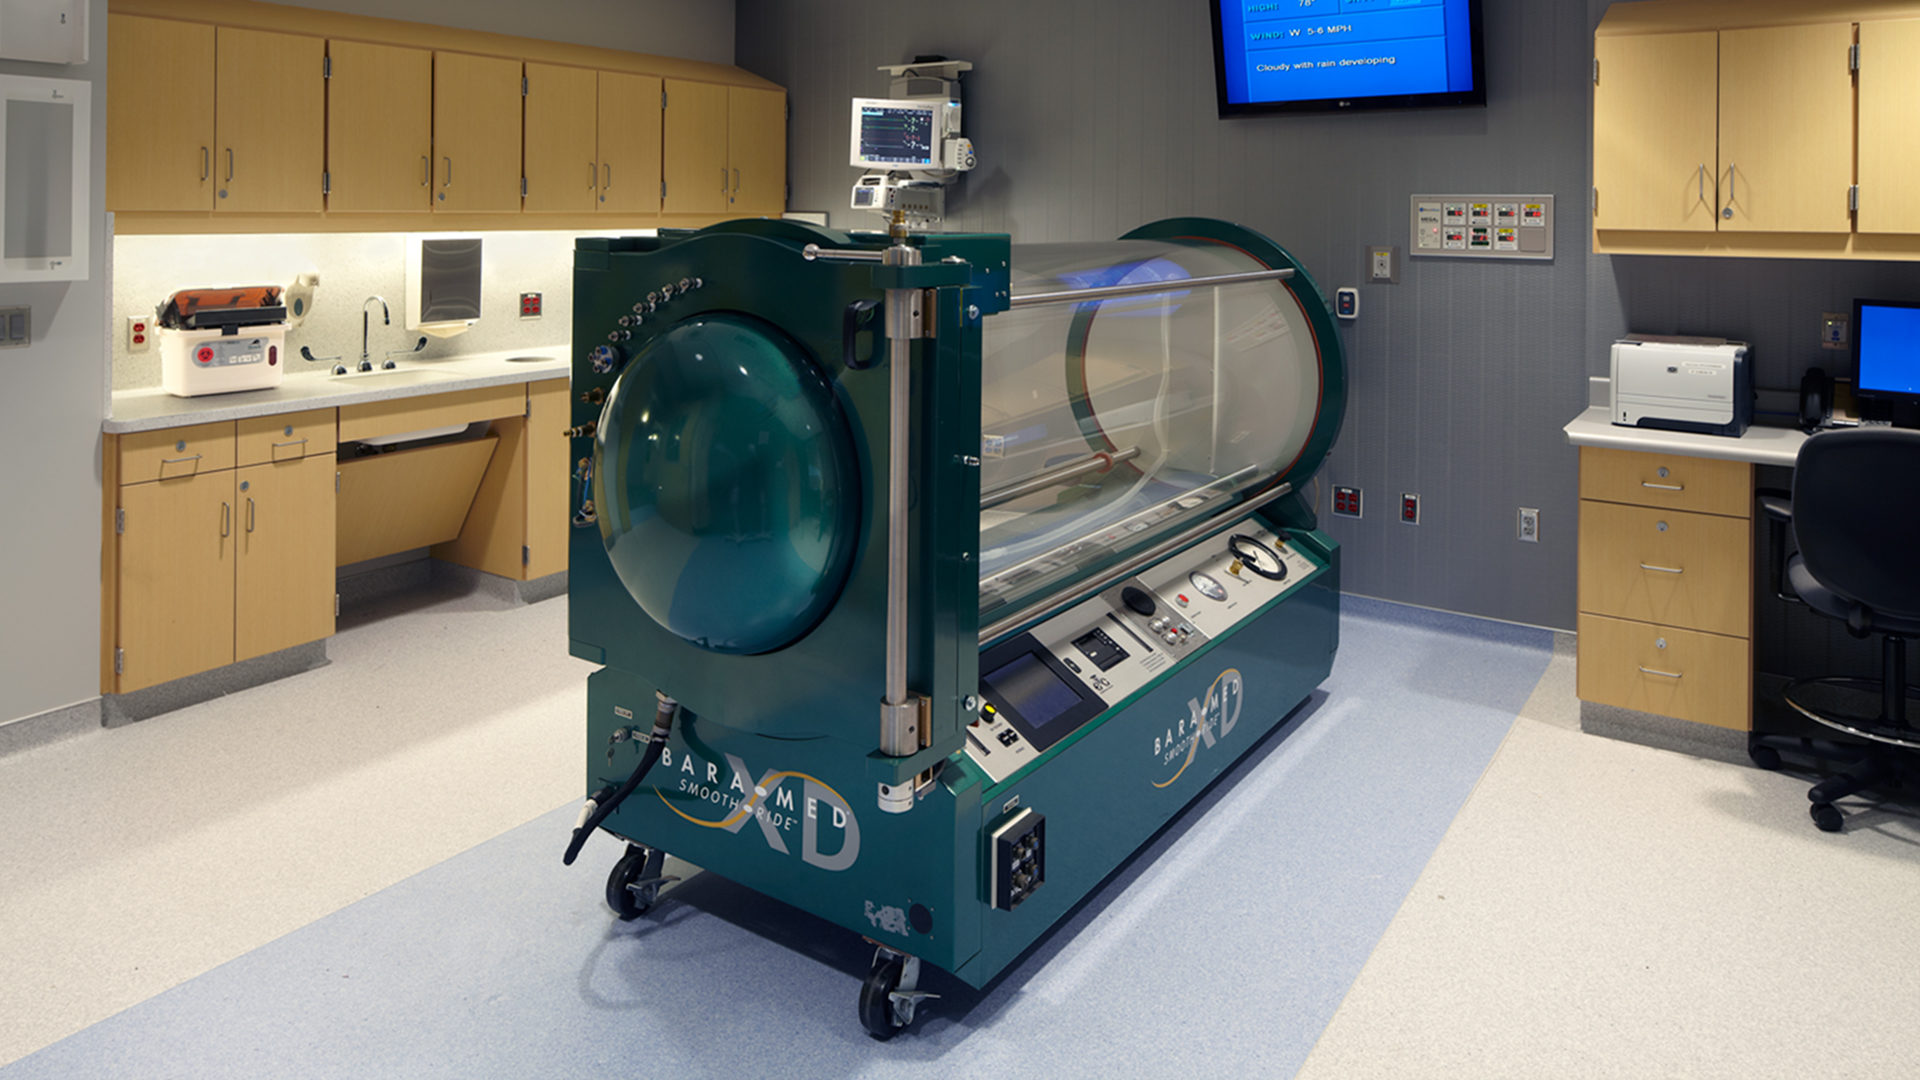 HCMC Hyperbaric Chamber Interior Lab Room Hosting a Bara Med Smooth Ride Machine